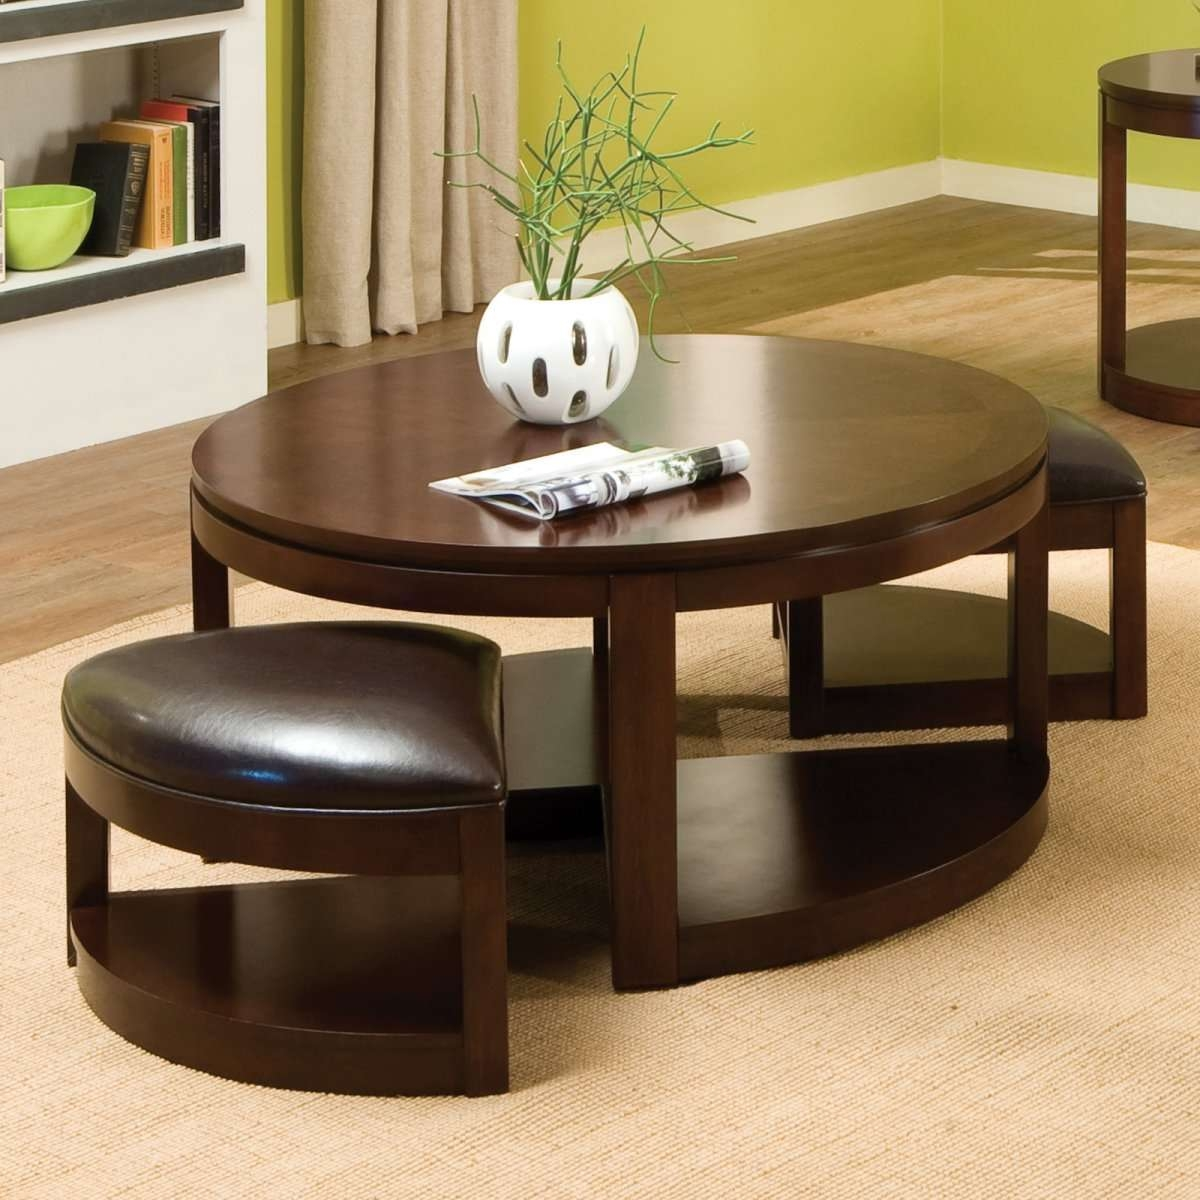 Most Recent Round Coffee Tables With Storages Intended For Round Coffee Table: Captivating Round Ottoman Coffee Table With (View 20 of 20)